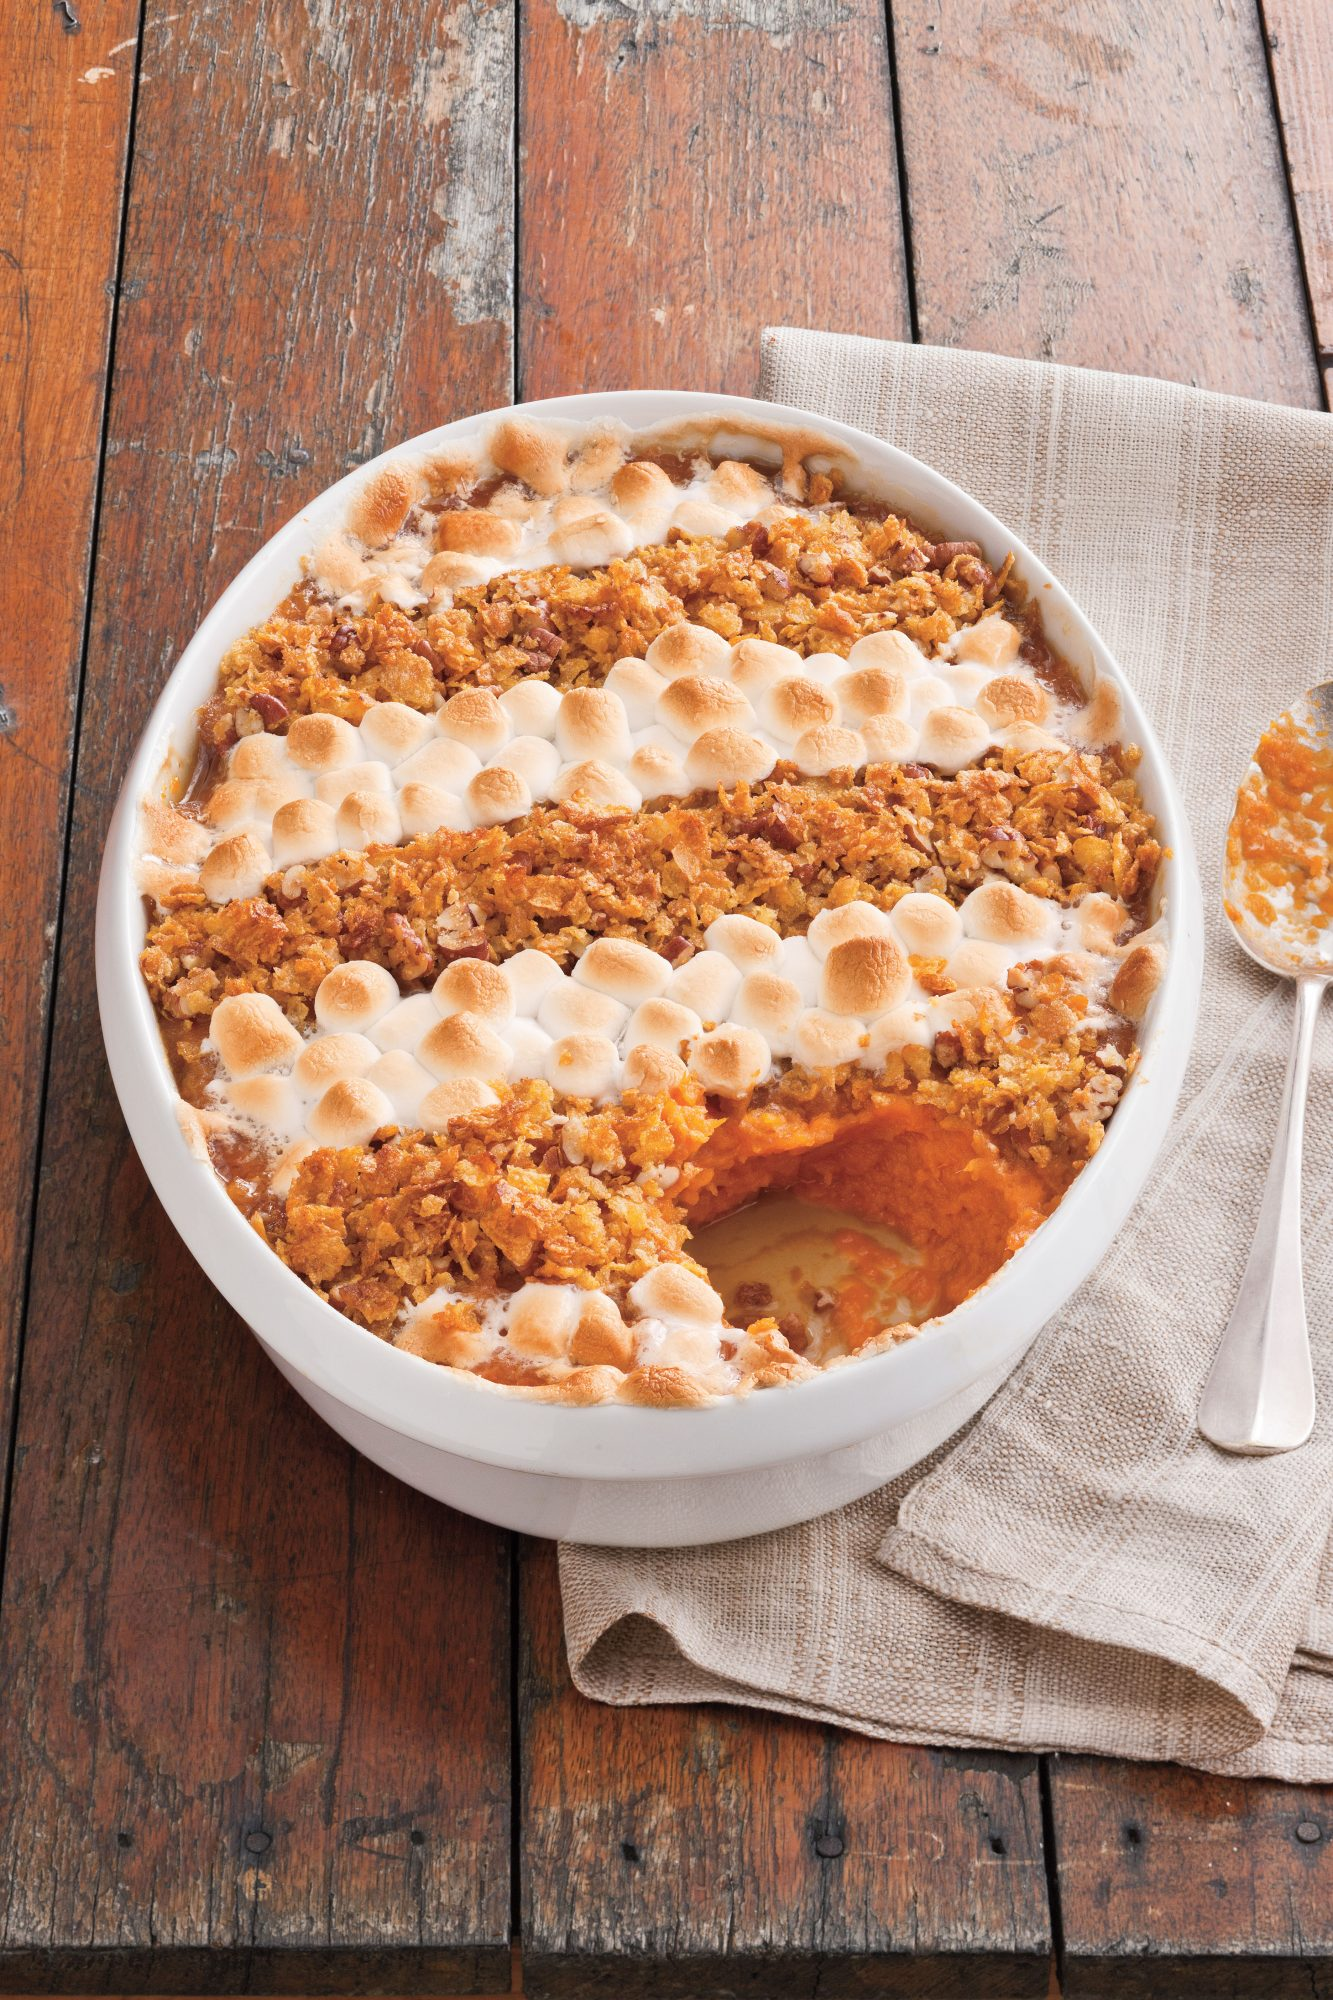 Cornflake, Pecan, and Marshmallow-Topped Sweet Potato Casserole